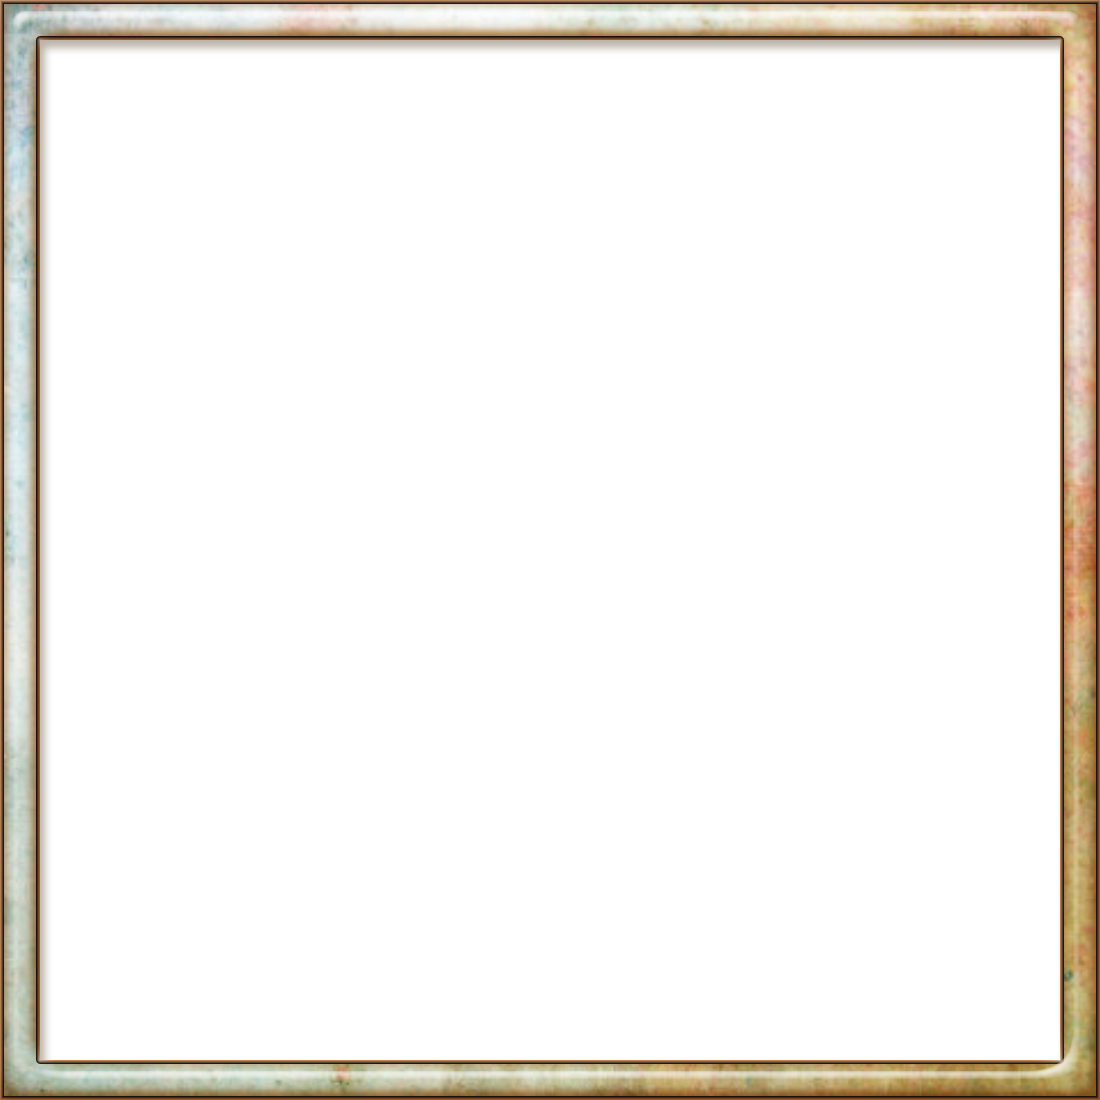 Square Transparent PNG Pictures